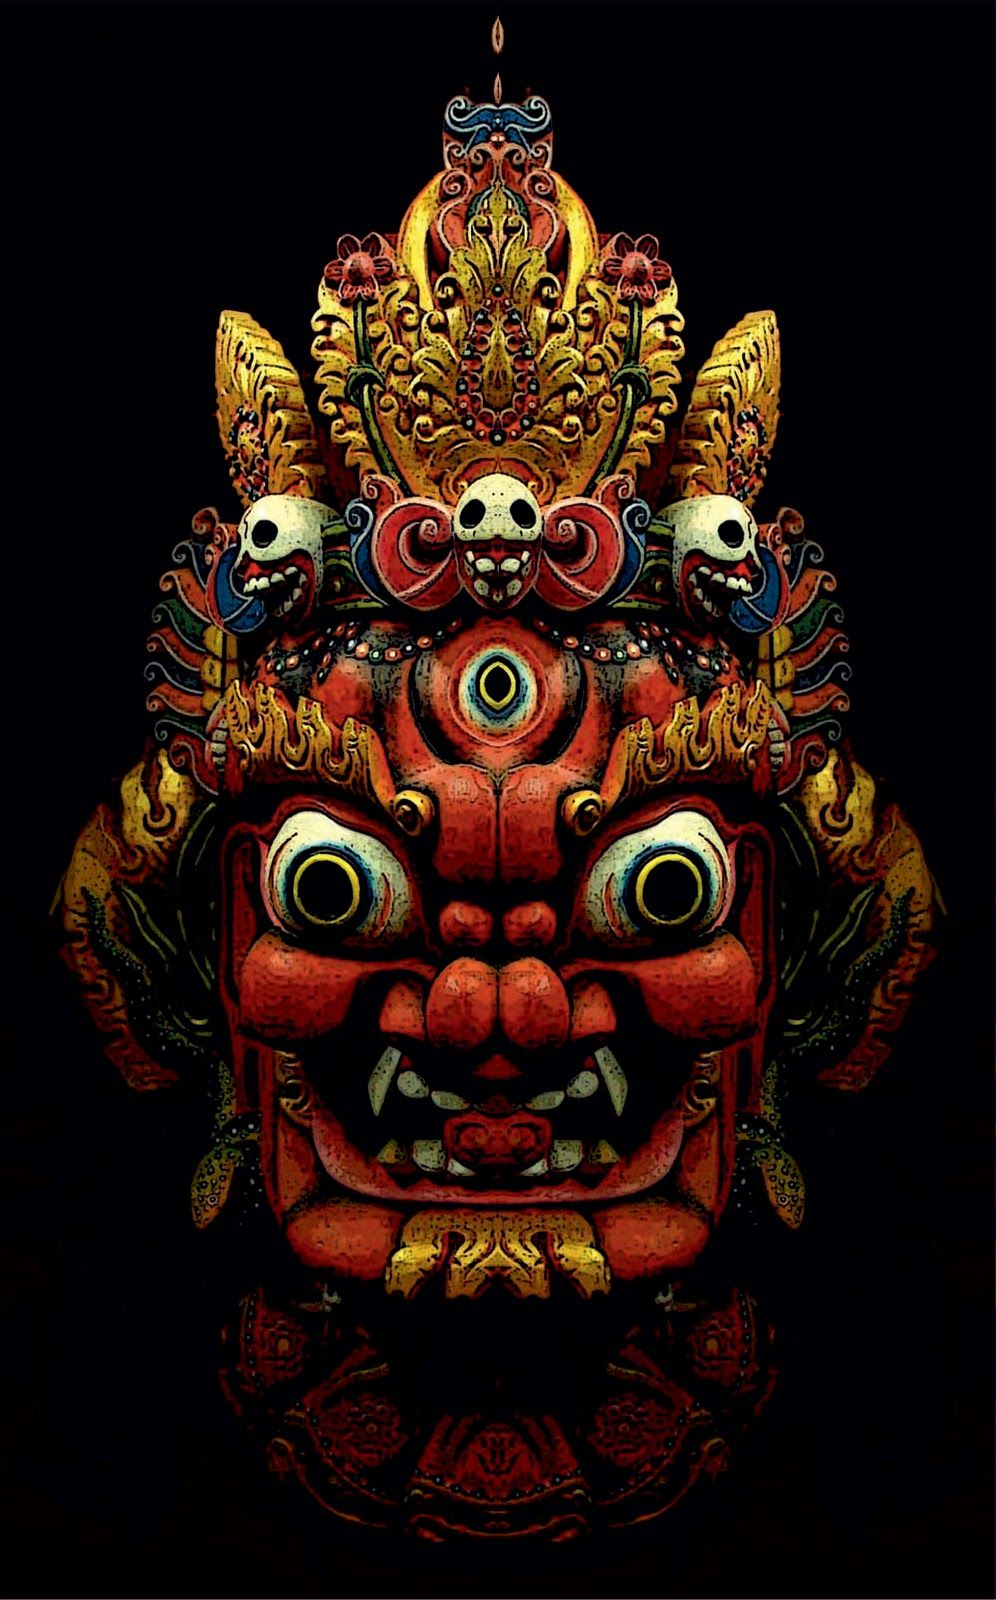 """Nepalese mask. """"Masks allowed the wearer to momentarily relieve themselves of their extremely dishonest everyday 'masquerade' of being a secure, sound, well-adjusted, happy person, and let the truth out, which could be very therapeutic for both the wearer and the observer."""" Jeremy Griffith"""